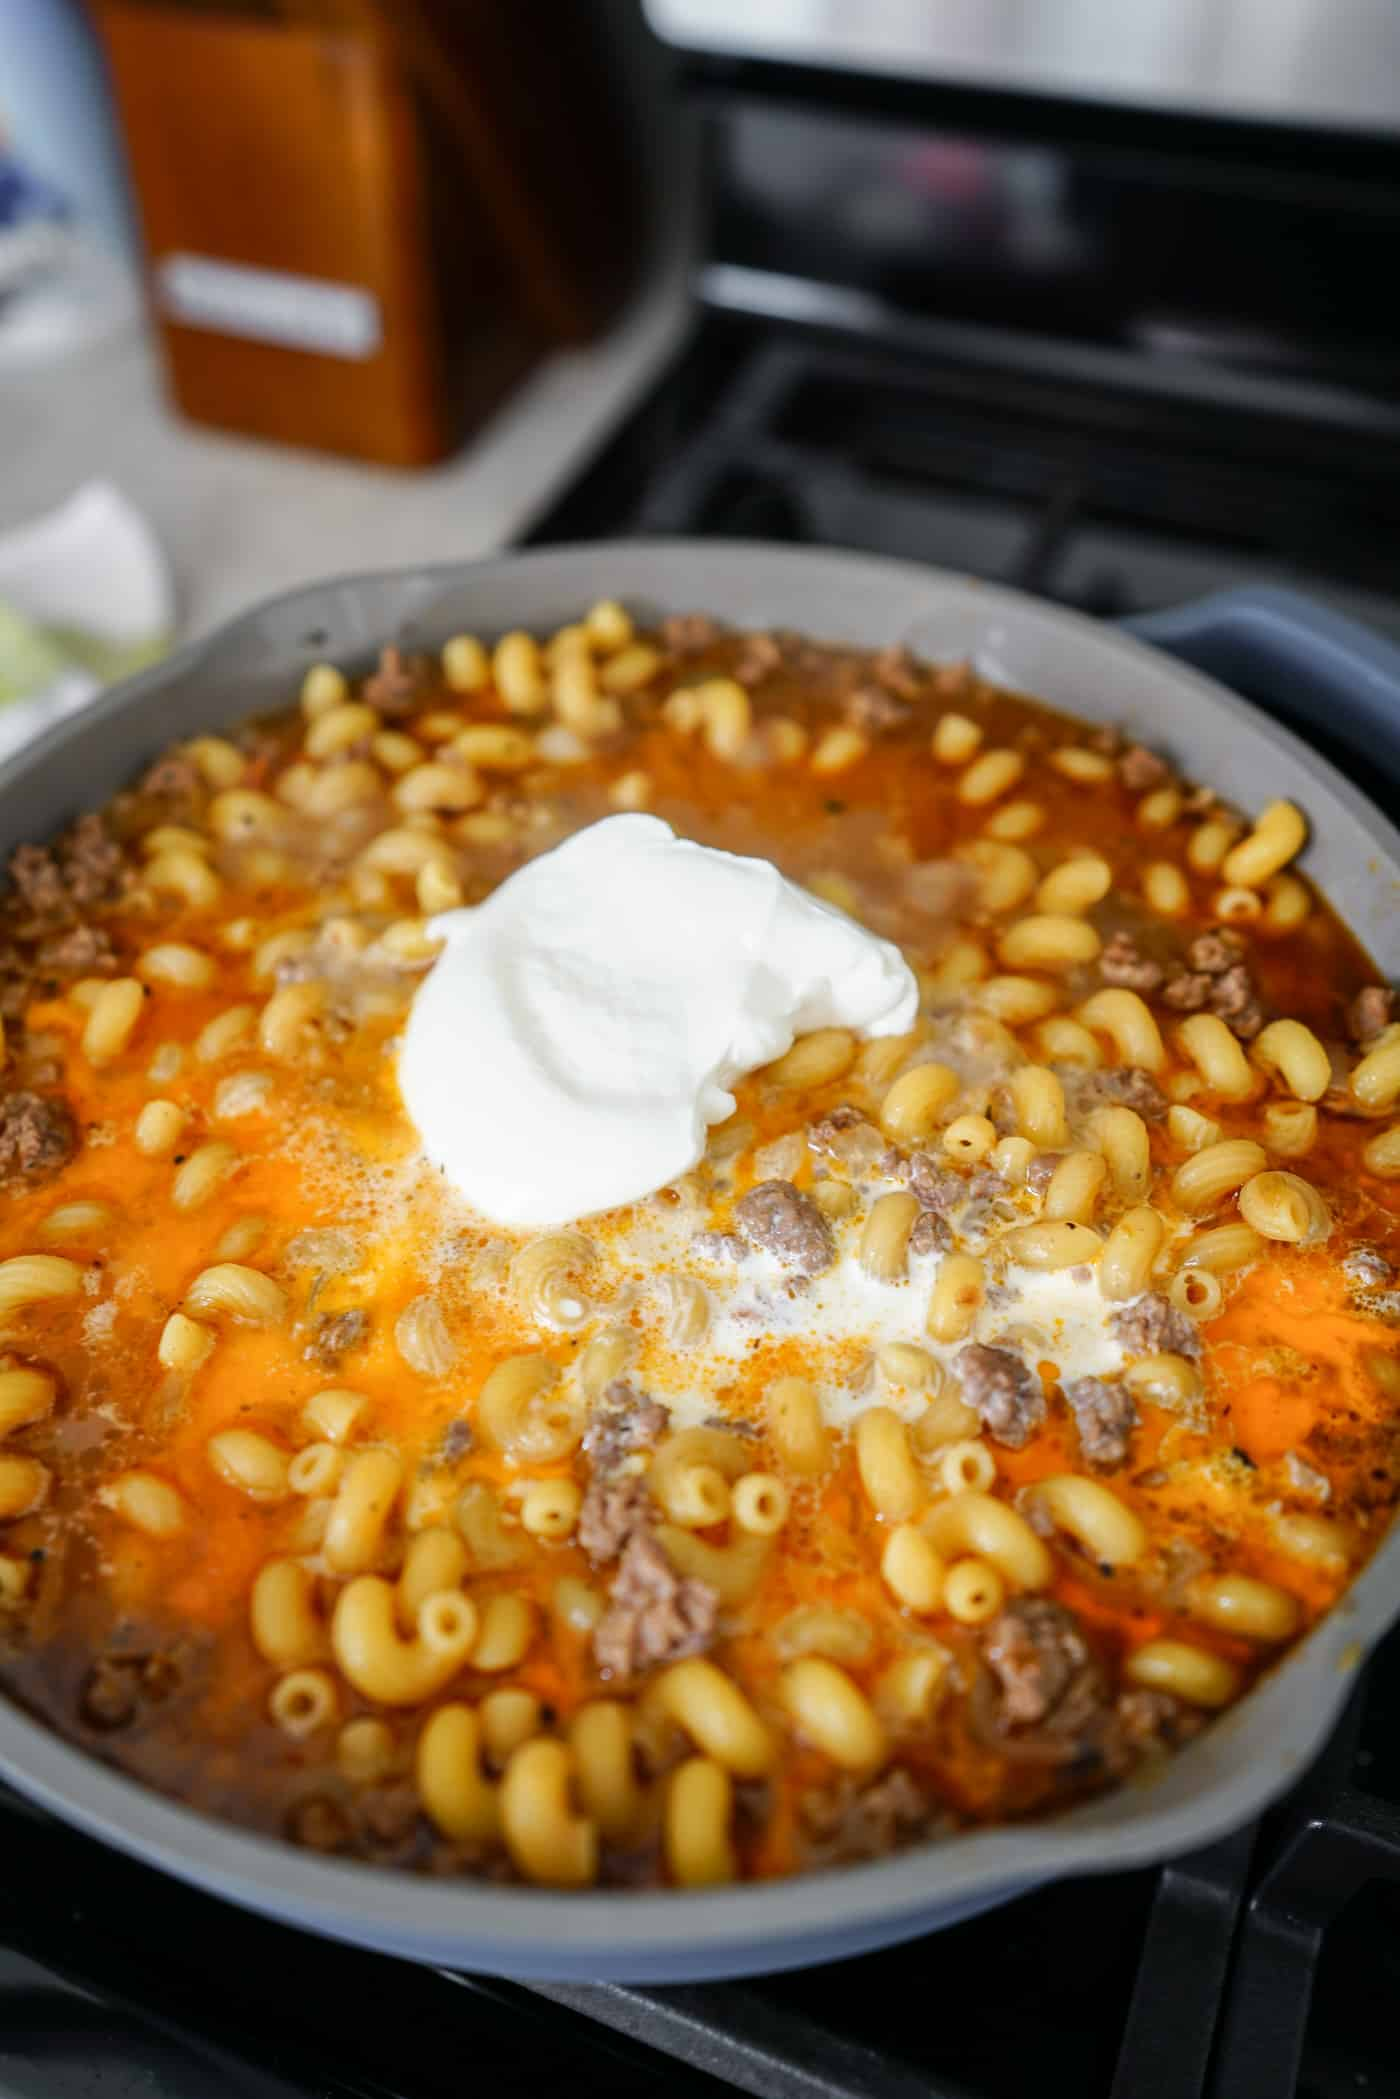 Pasta shells, ground beef, beef broth, cheese and sour cream cooking on the stove top in a large pan.